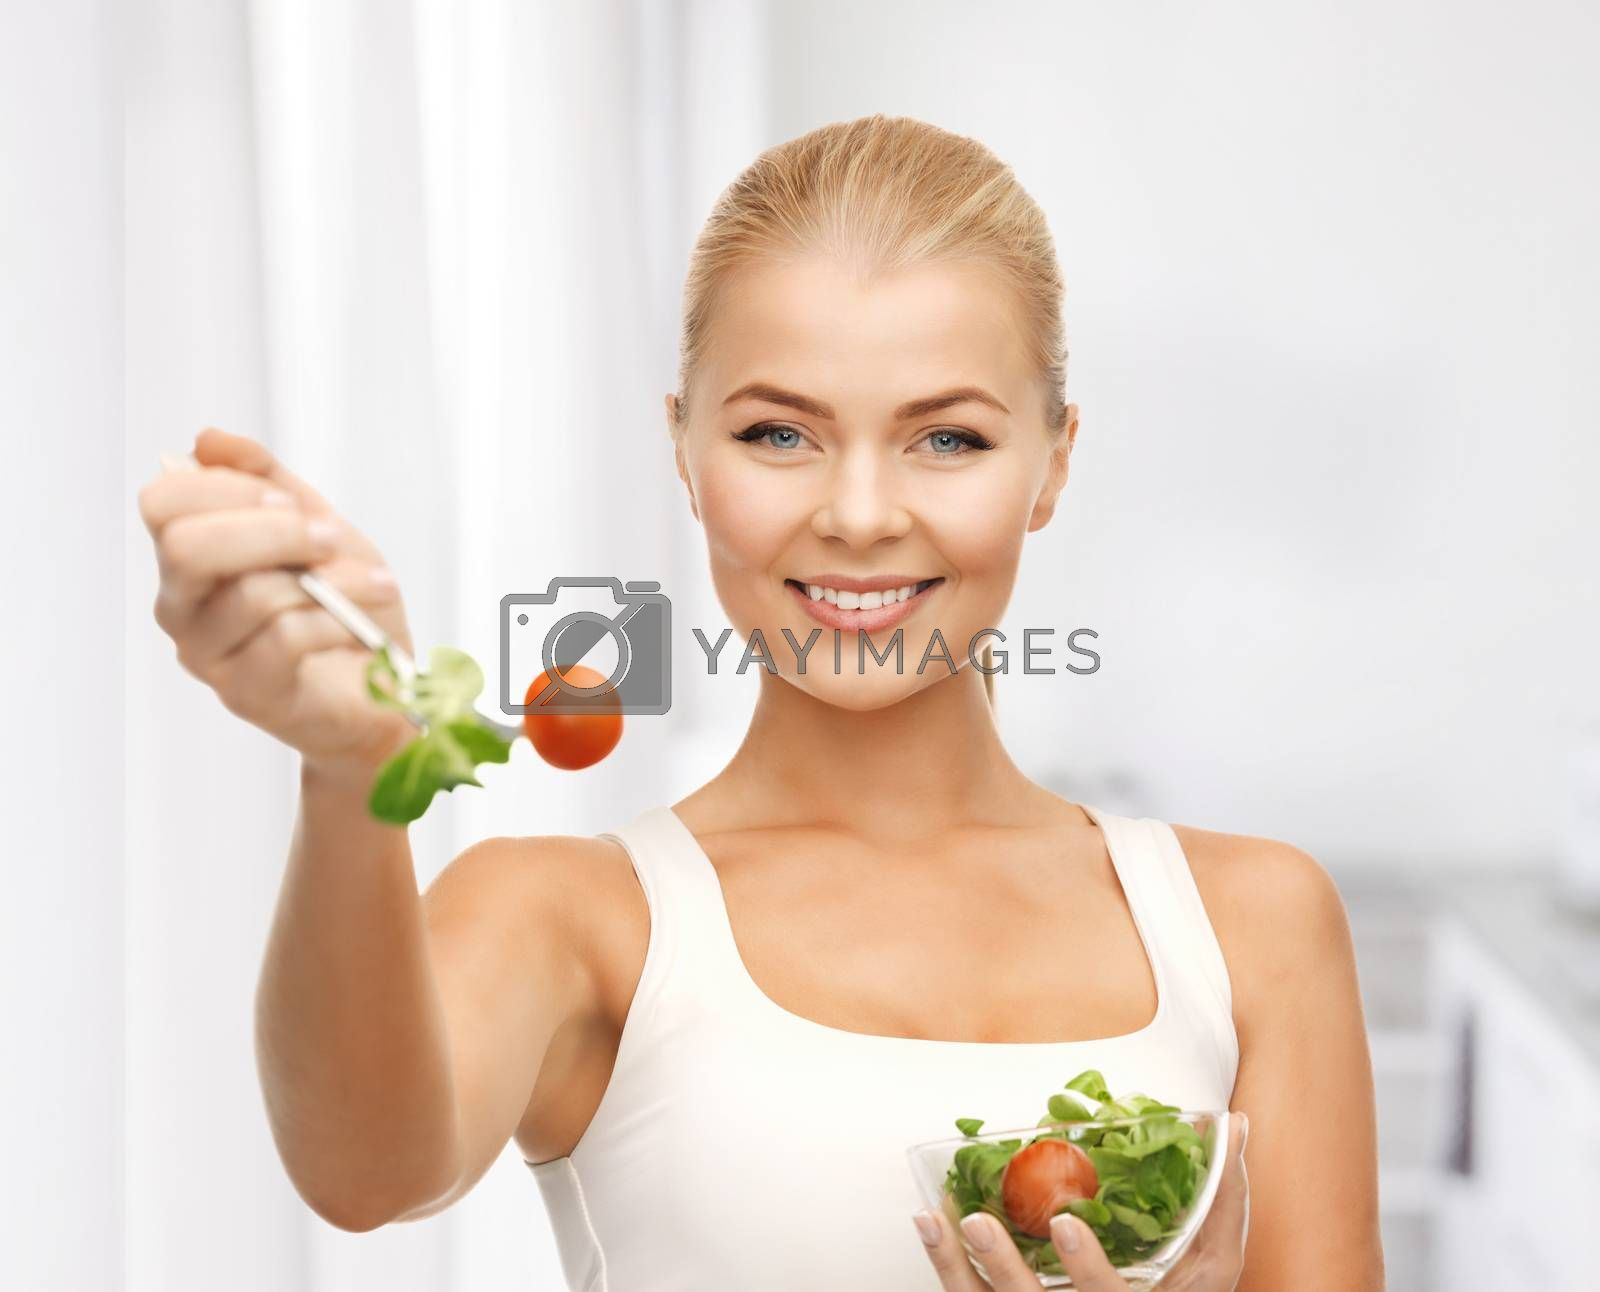 healthy woman holding bowl with salad by dolgachov